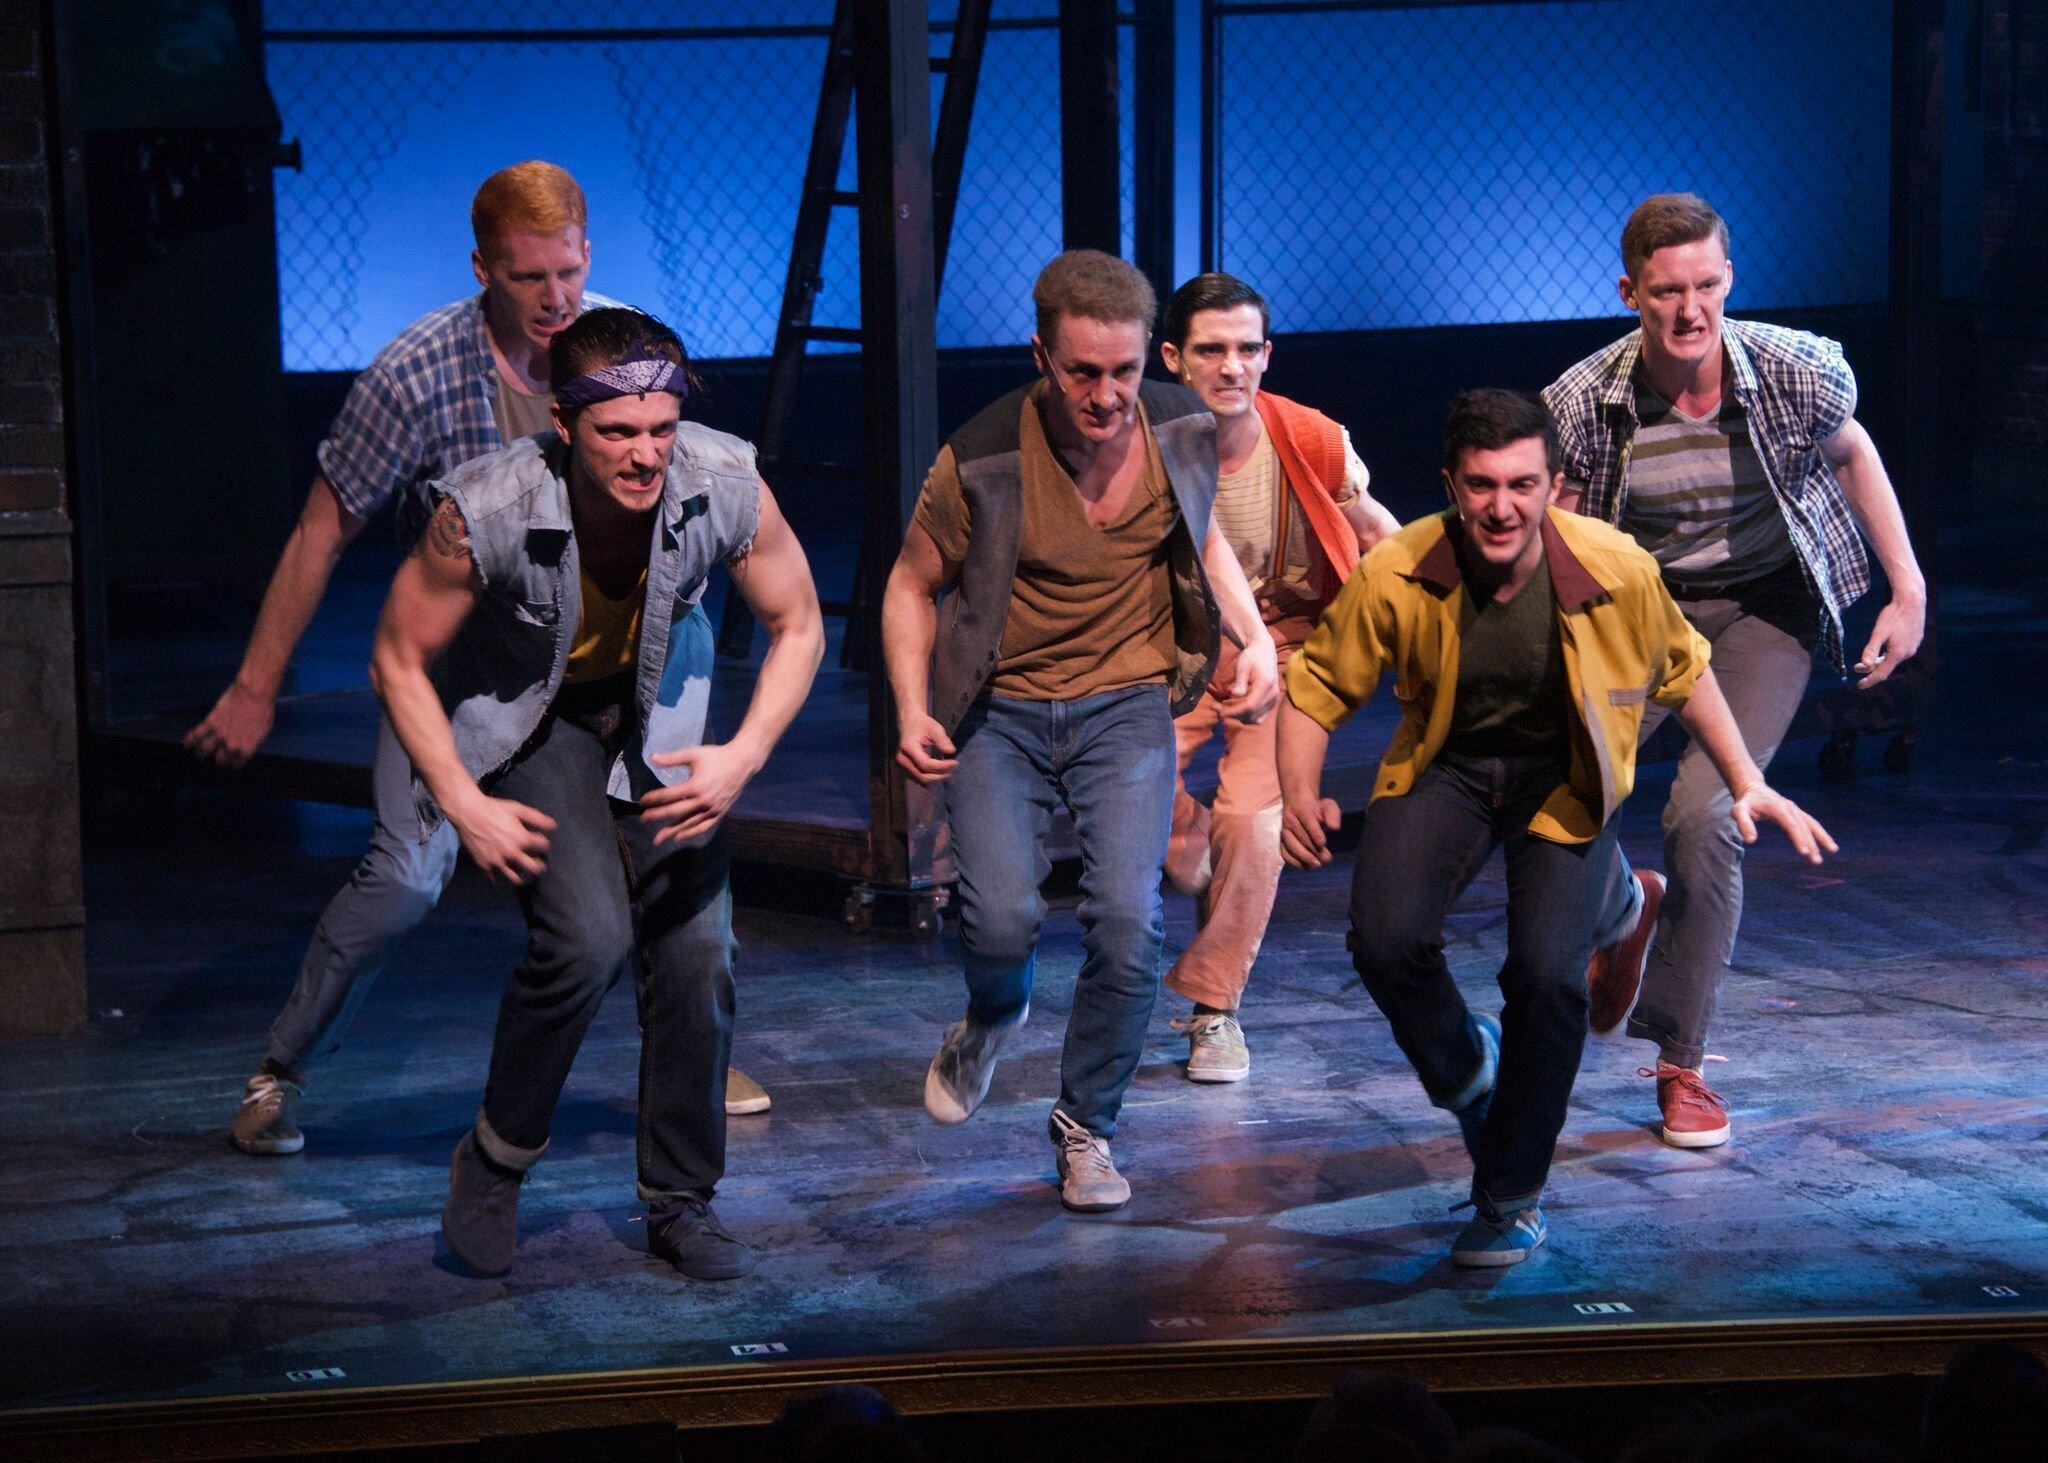 a review of west side story in production of the papermill theater With productions like these, it's little wonder that the company will be awarded the prestigious regional 2016 tony award at sunday's tony awards.